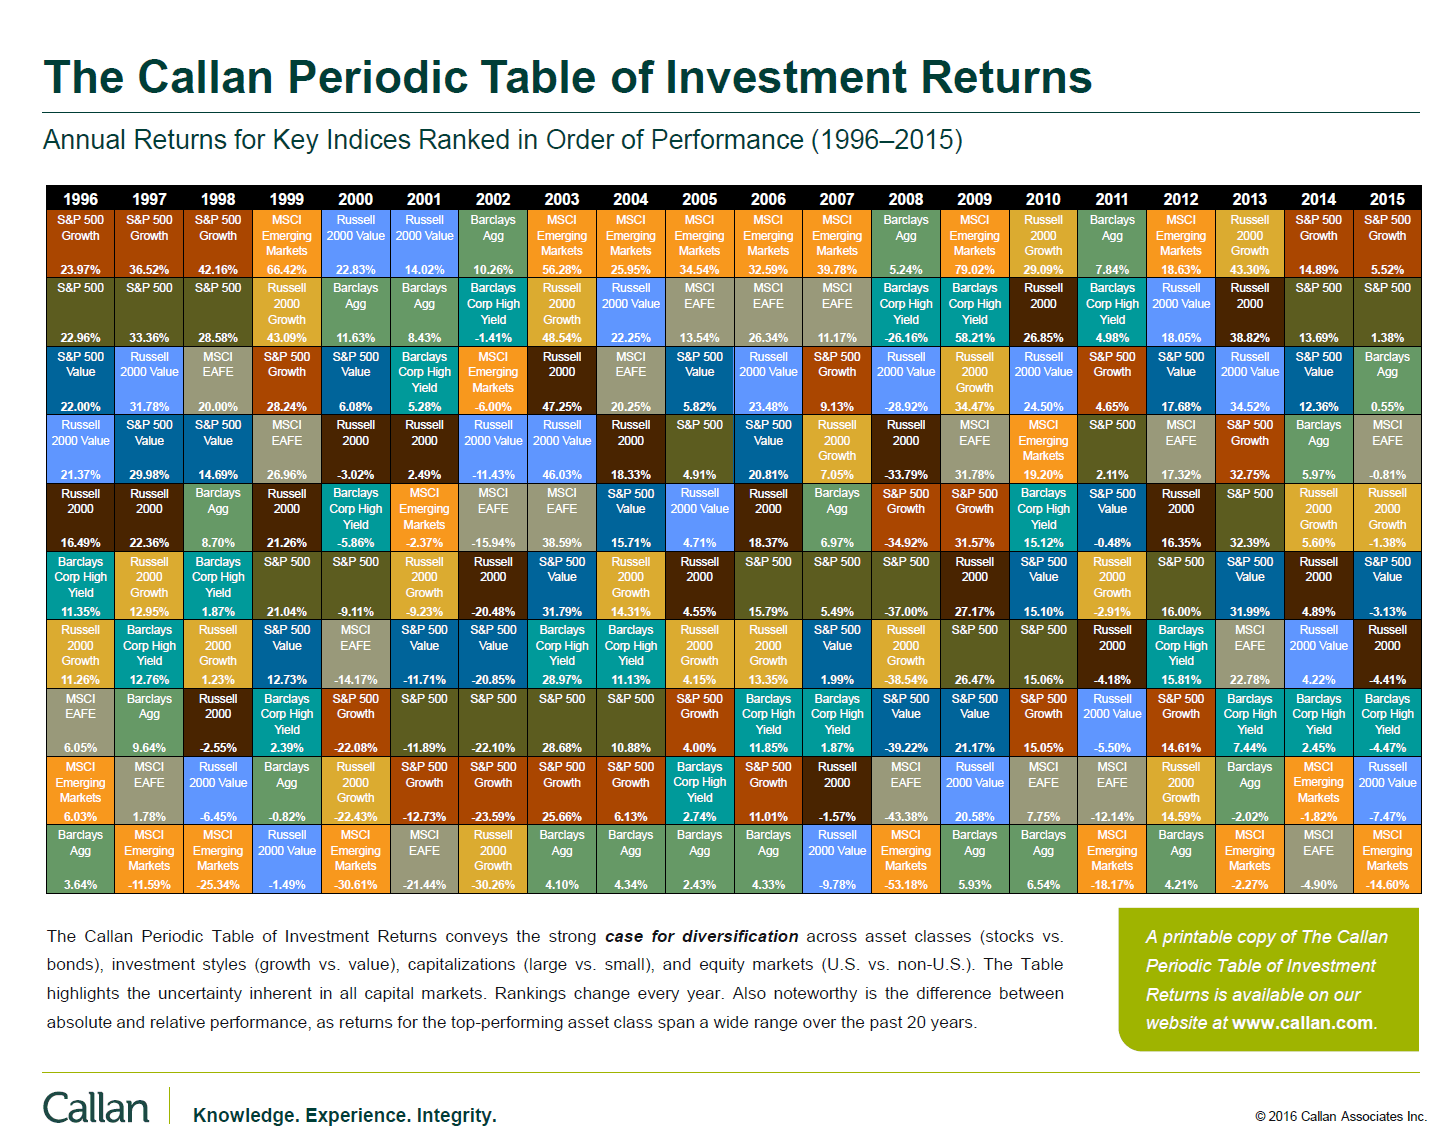 Callan Periodic Table of Investment Returns 2015